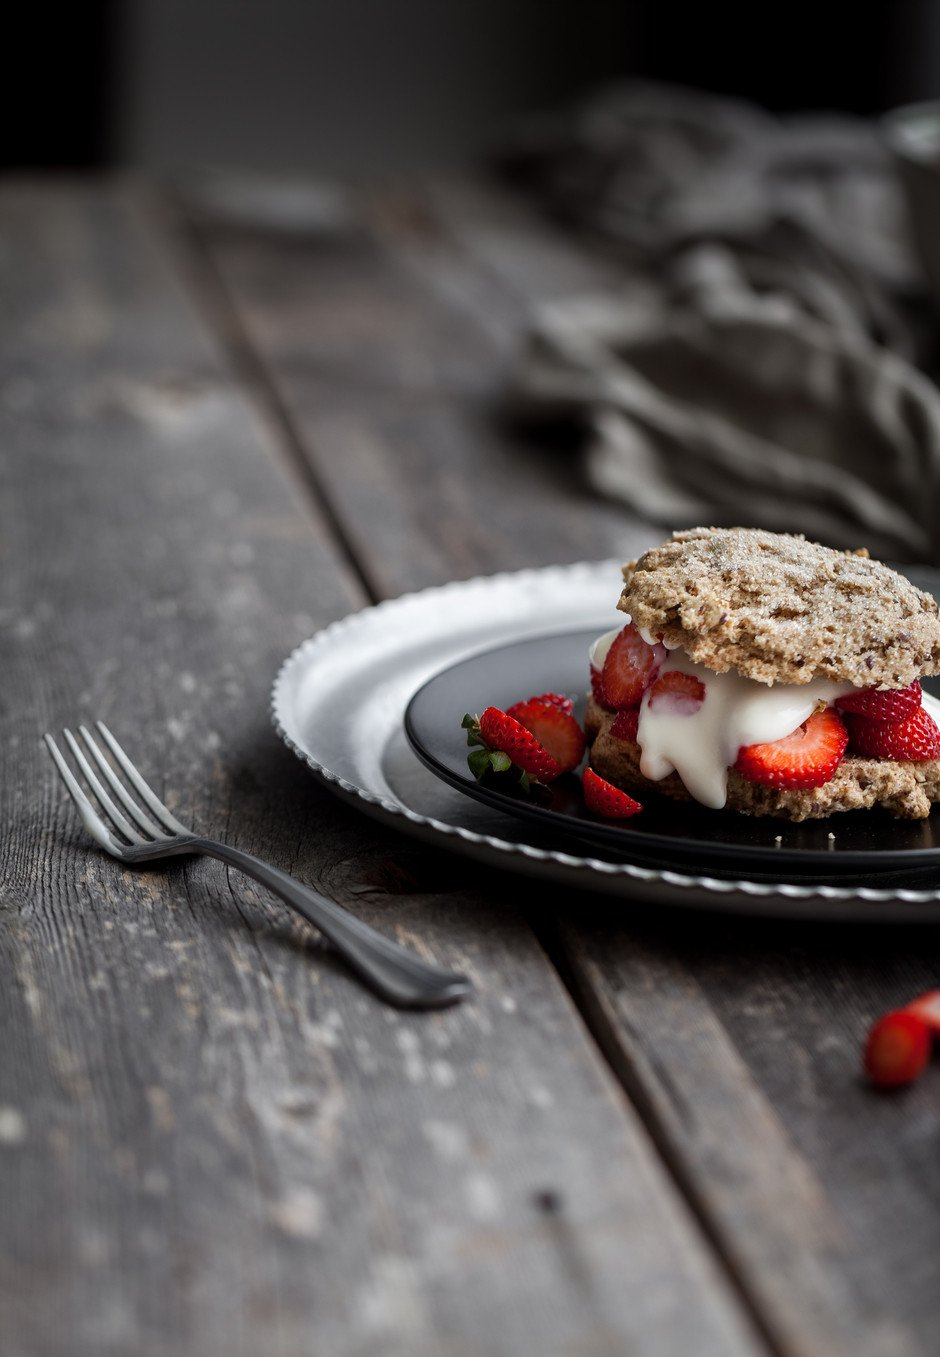 portrait view of a vegan strawberry shortcake on a black plate with a fork on a wood surface.